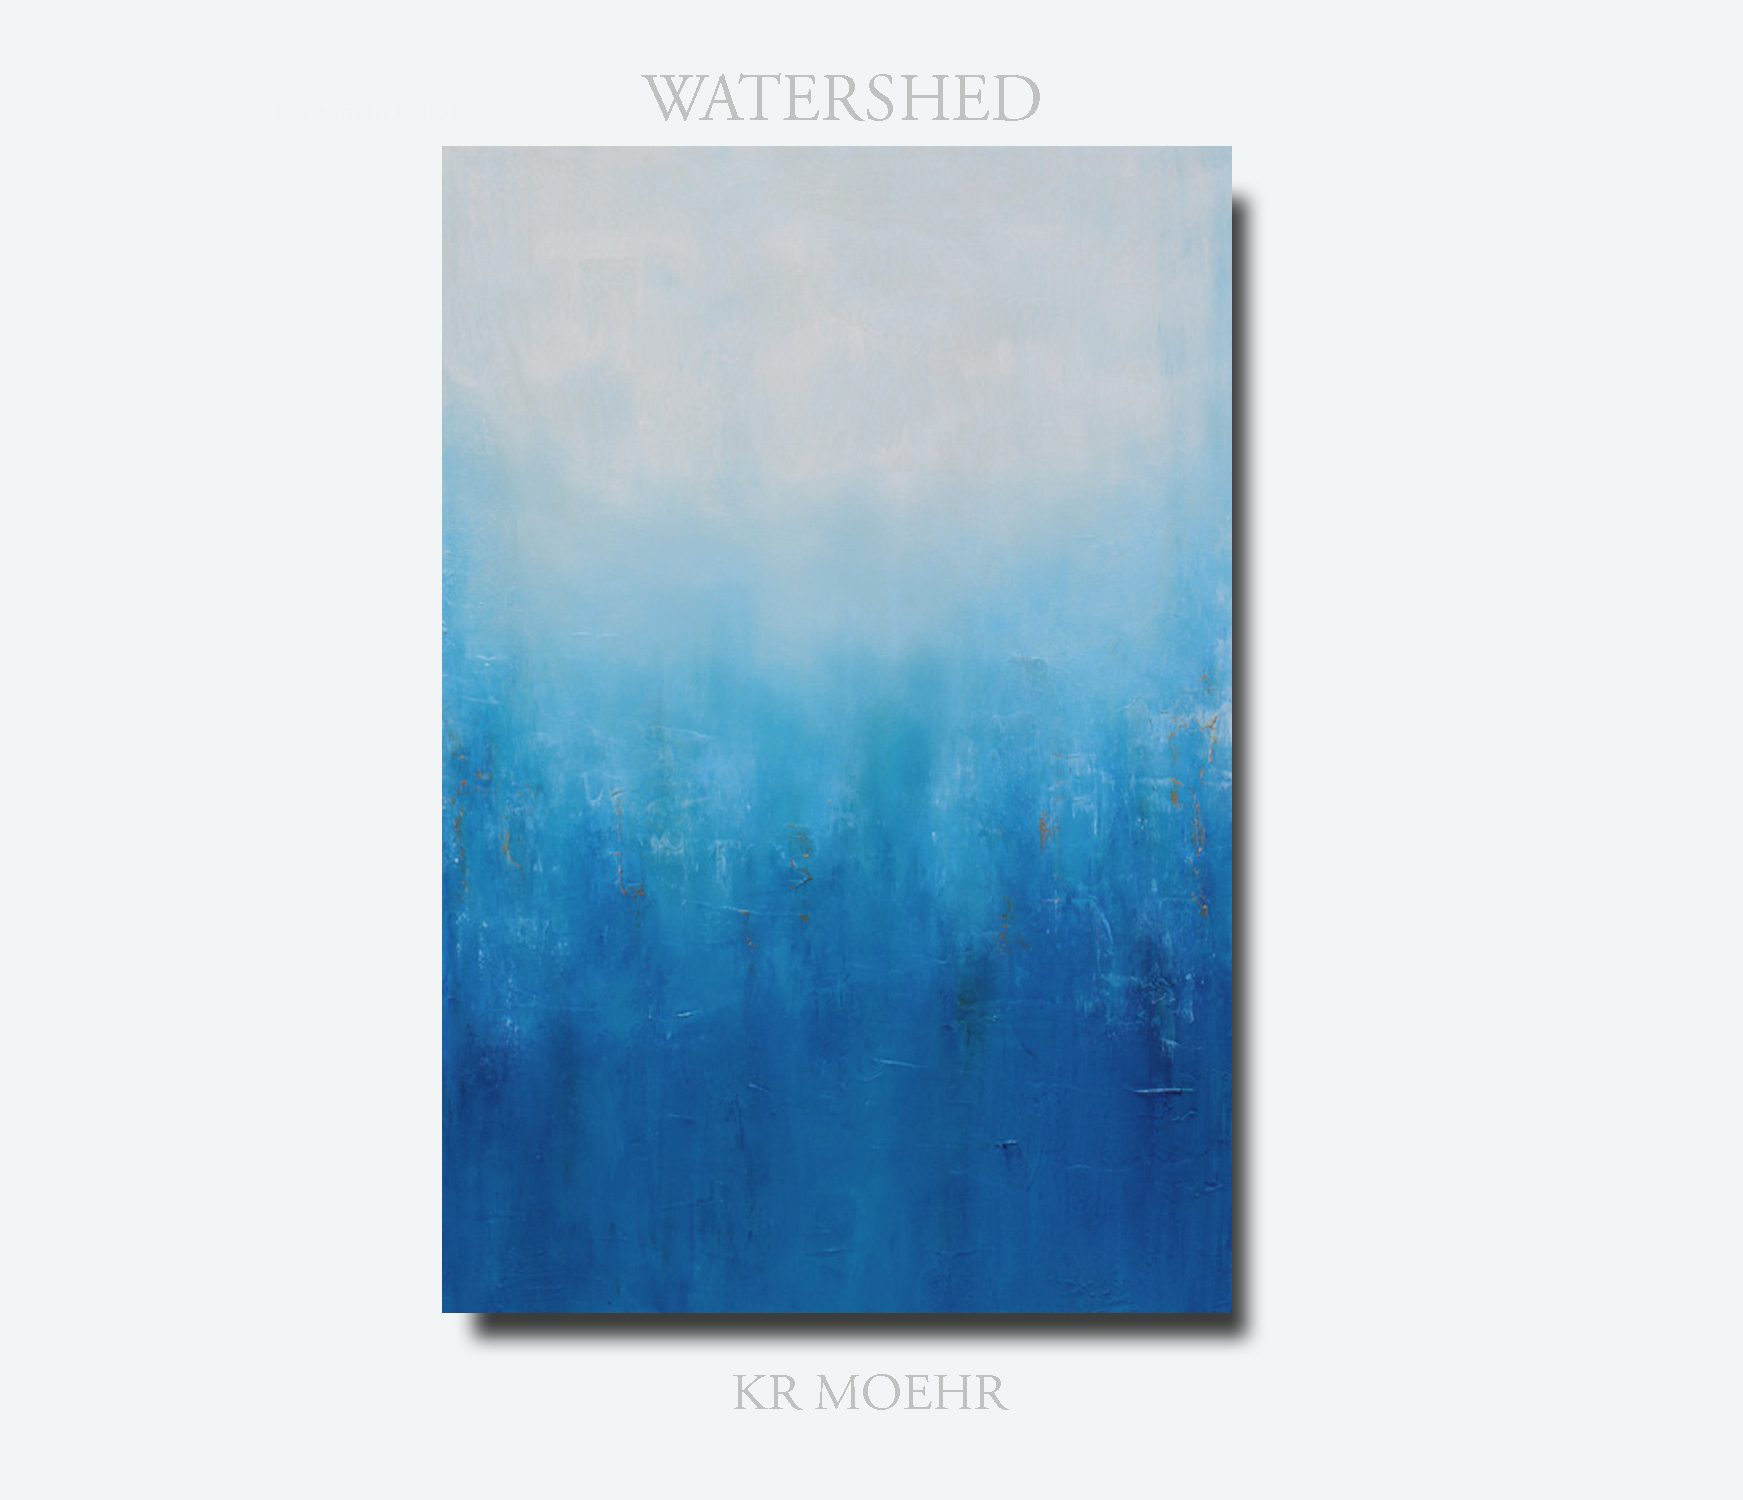 WATERSHED BY KR MOEHR - SOLD